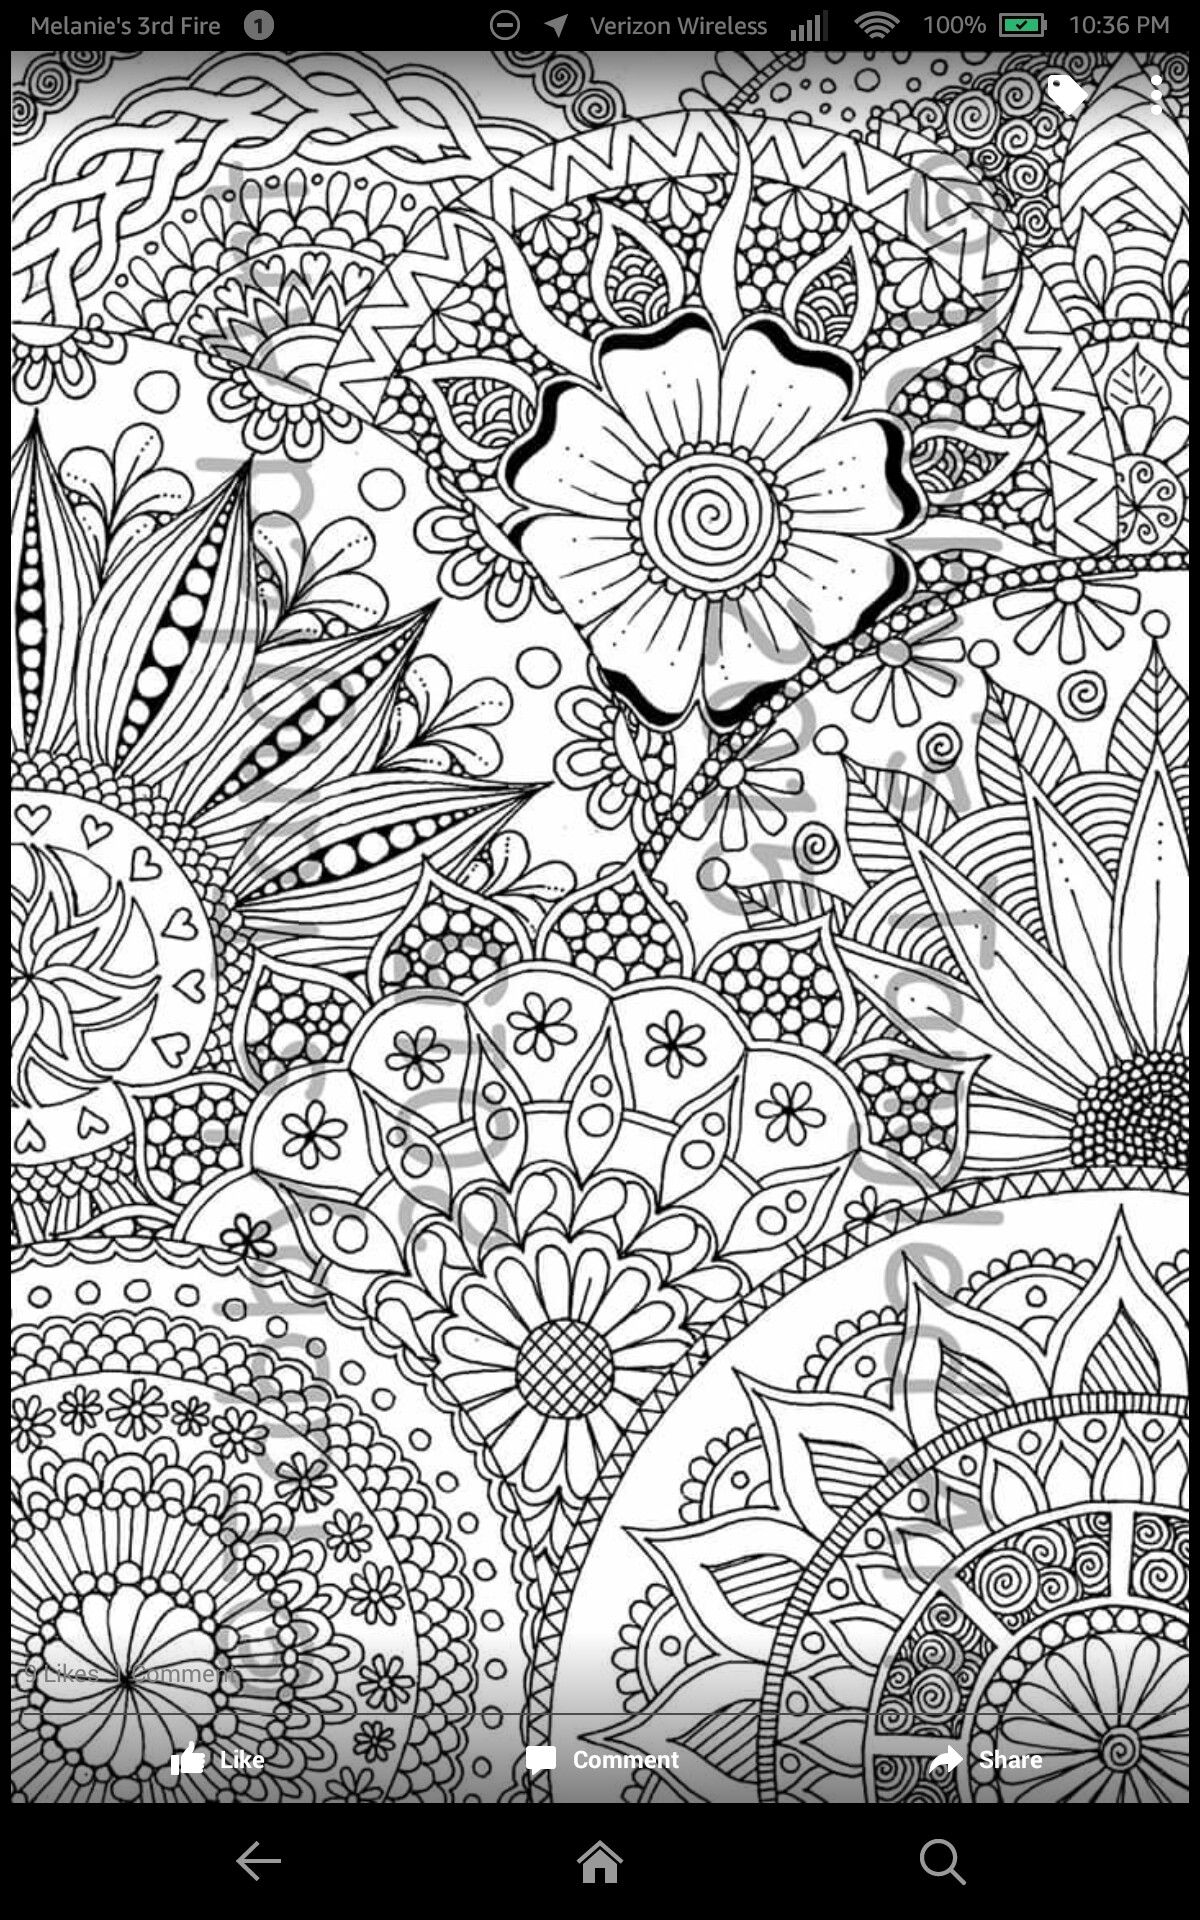 Healthy Lifestyle Stress Management Adult Coloring Adult